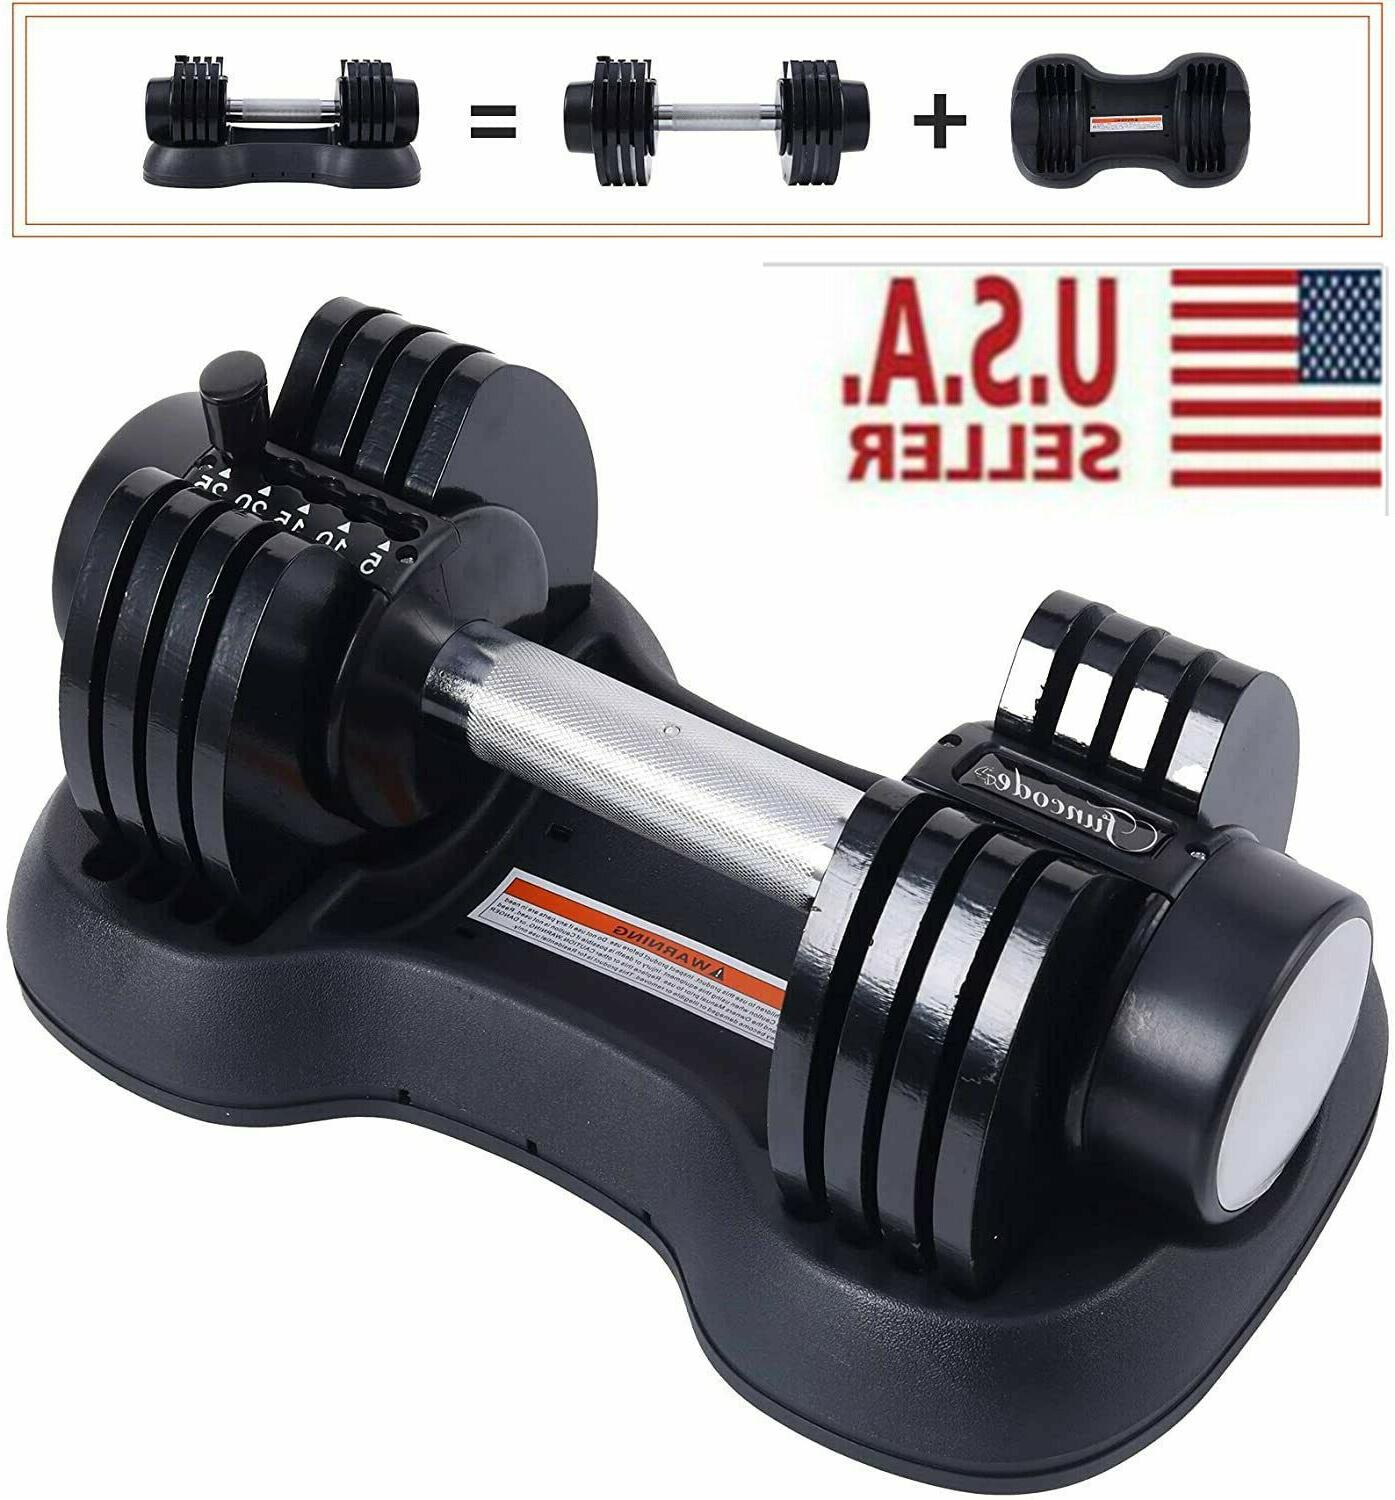 adjustable dumbbell 0525 fitness strength training workout